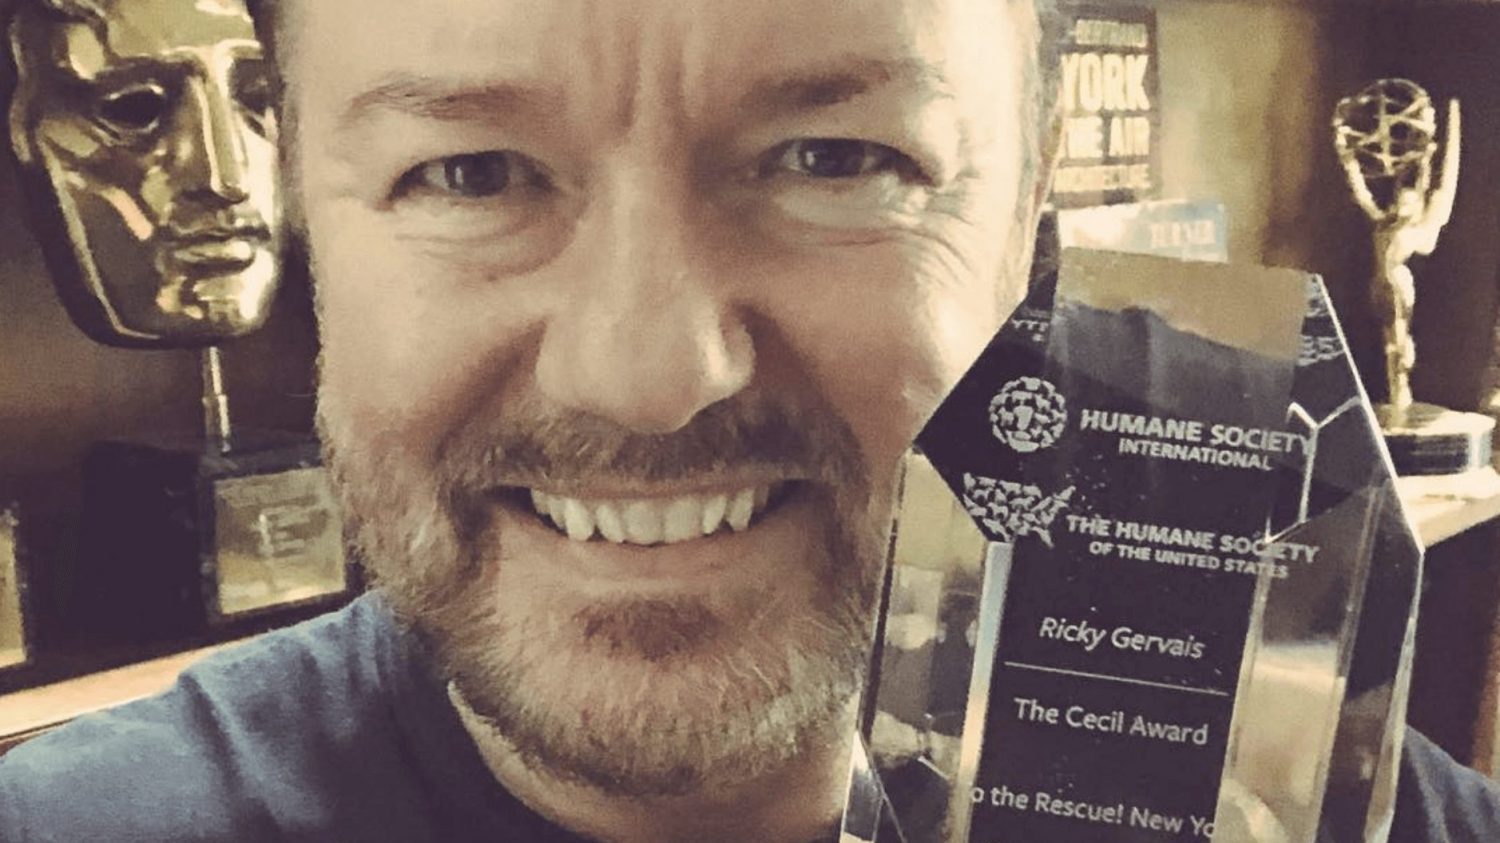 Vegetarian Actor Ricky Gervais Receives the Humane Society International Cecil Award for Standing Up to Trophy Hunting